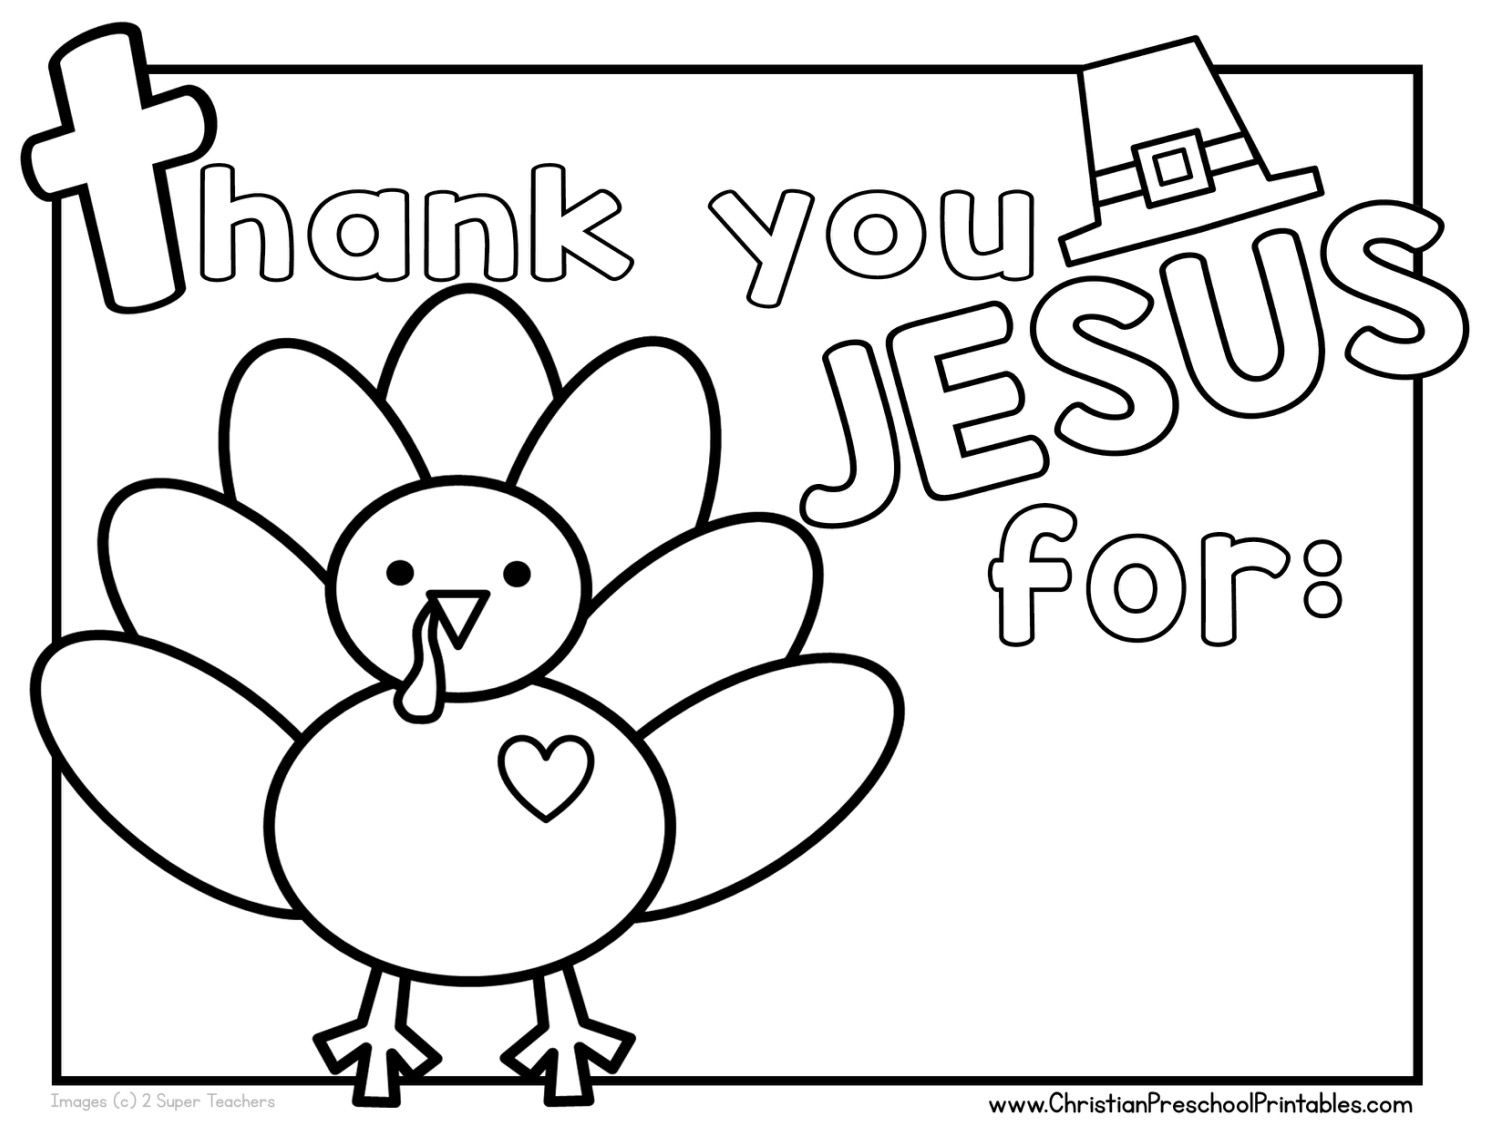 Thanksgiving coloring pages with bible verses - Thanksgiving Bible Coloring Pages